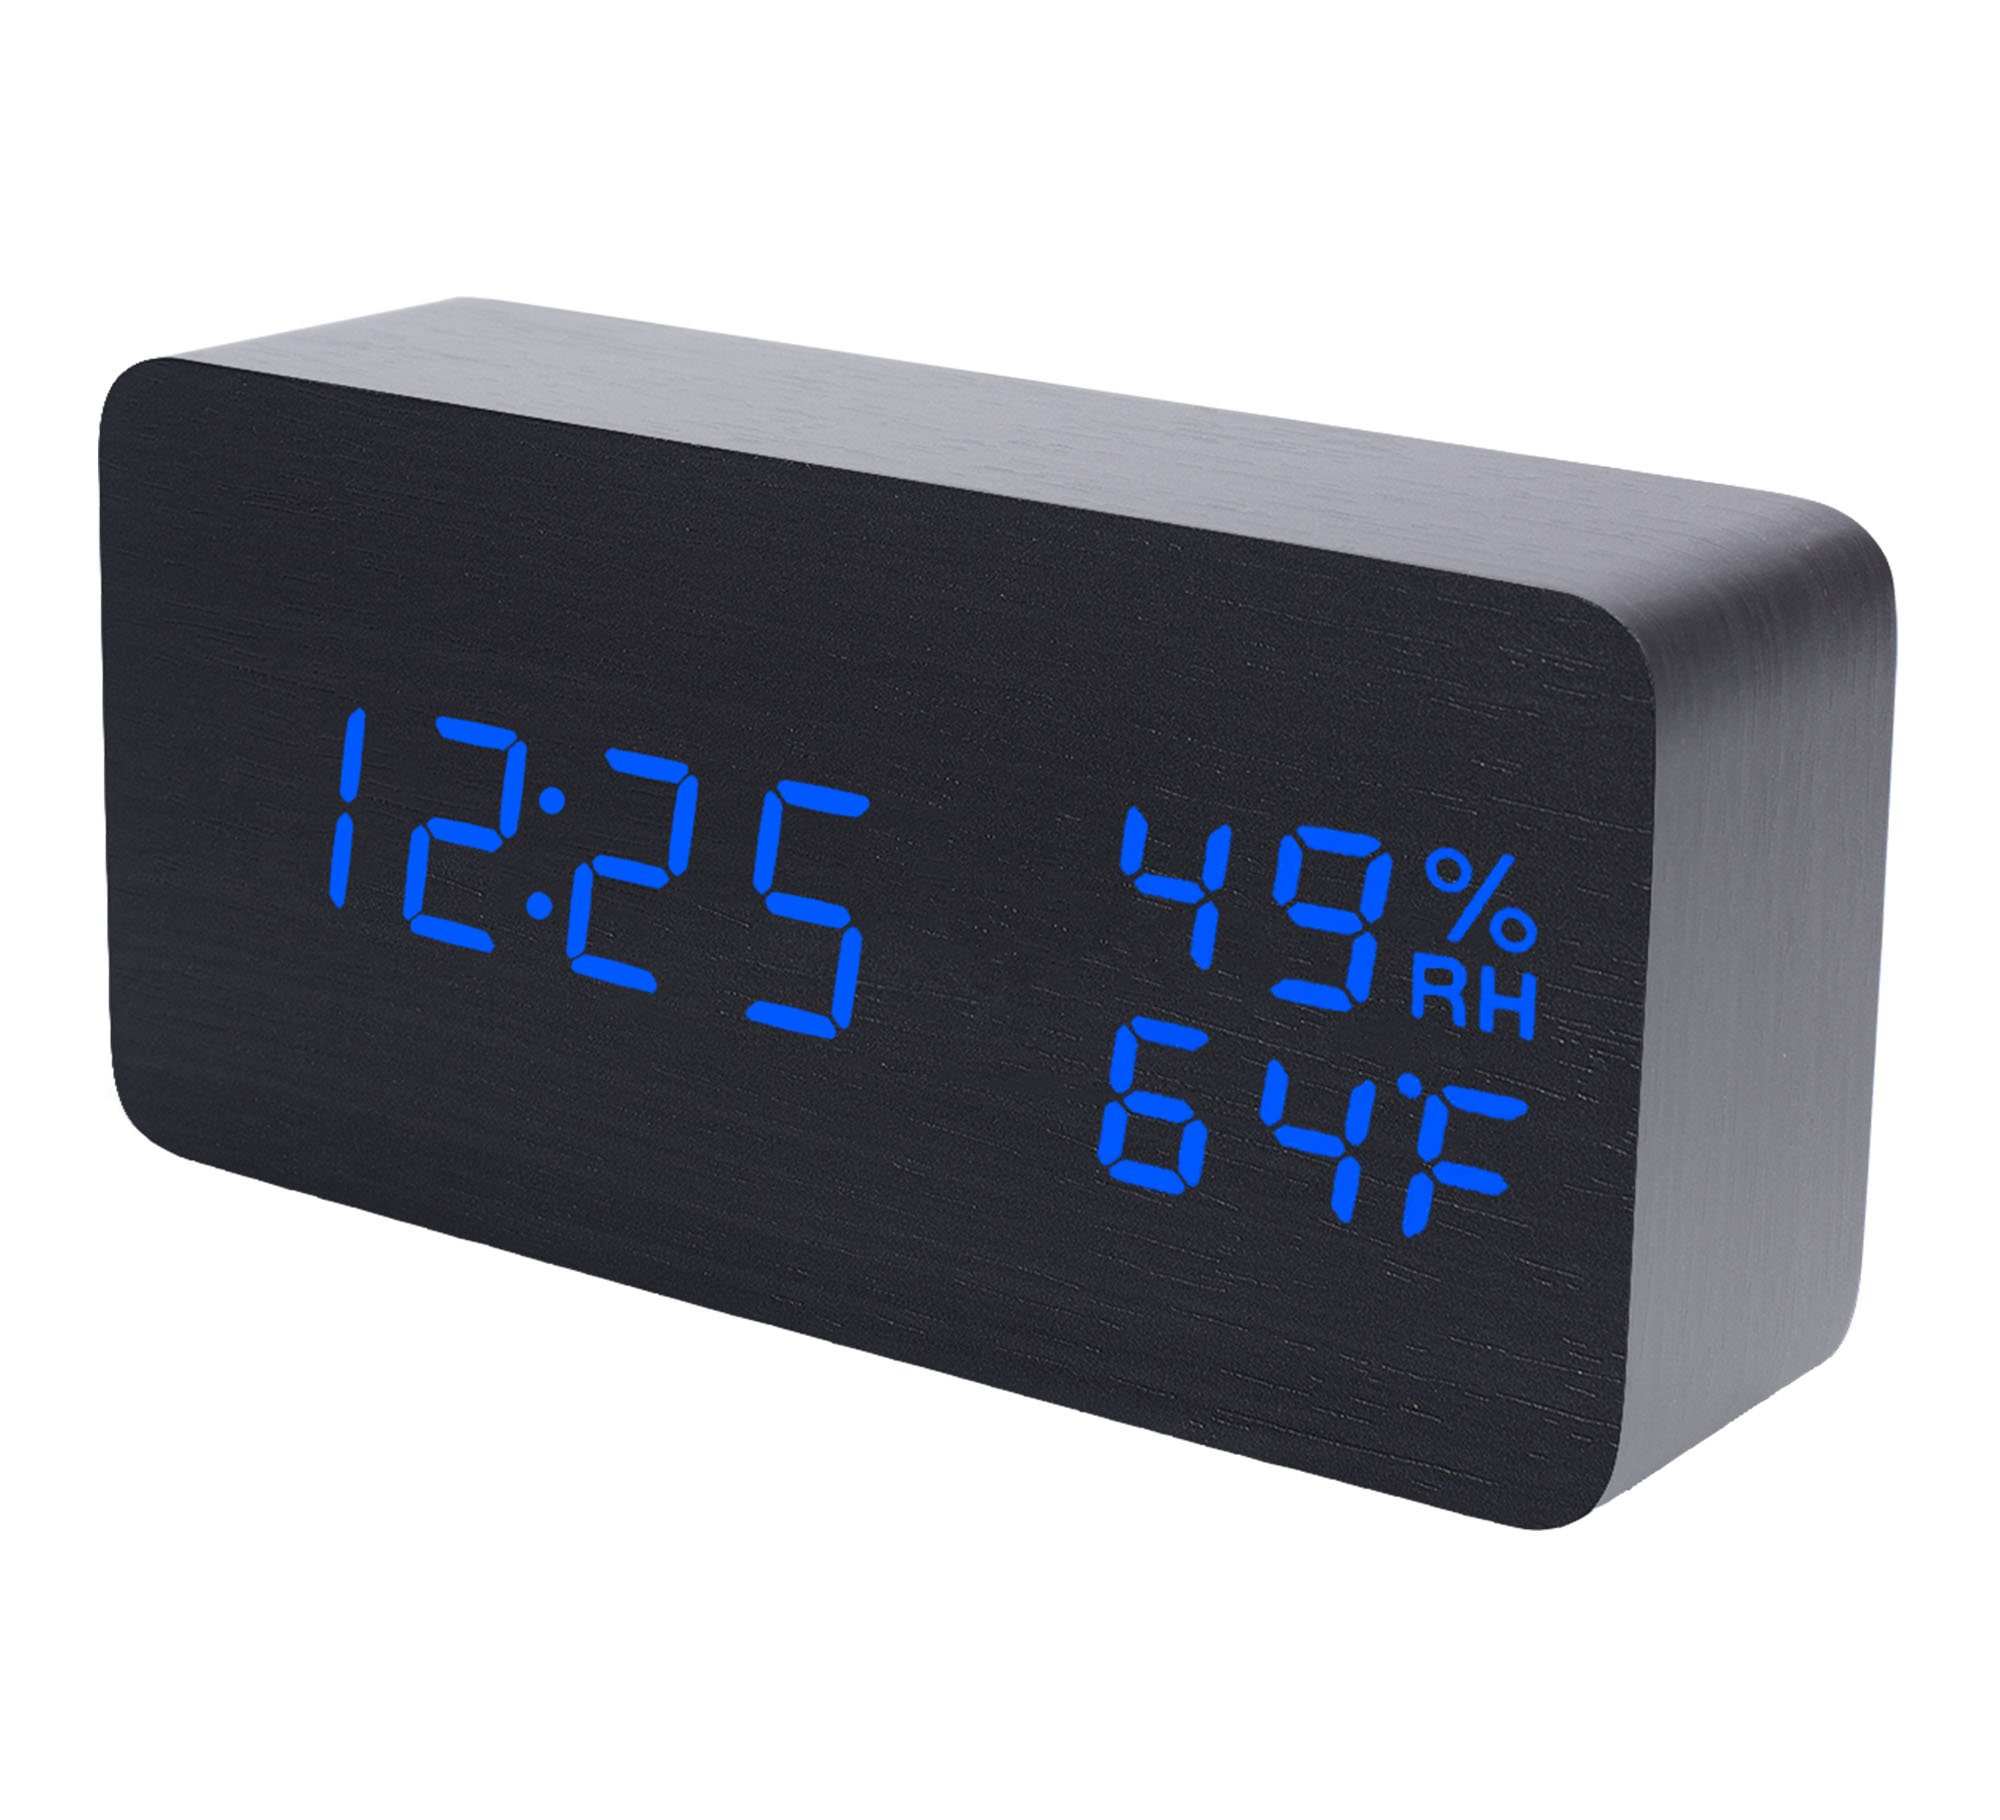 Raercodia Wooden Alarm Clock Modern Wood Clock Digital Electronic Desk Clock with Night Light LED Display Time Date Temperature Humidity Voice Control Brightness Adjust for Home Office (Black,Blue)